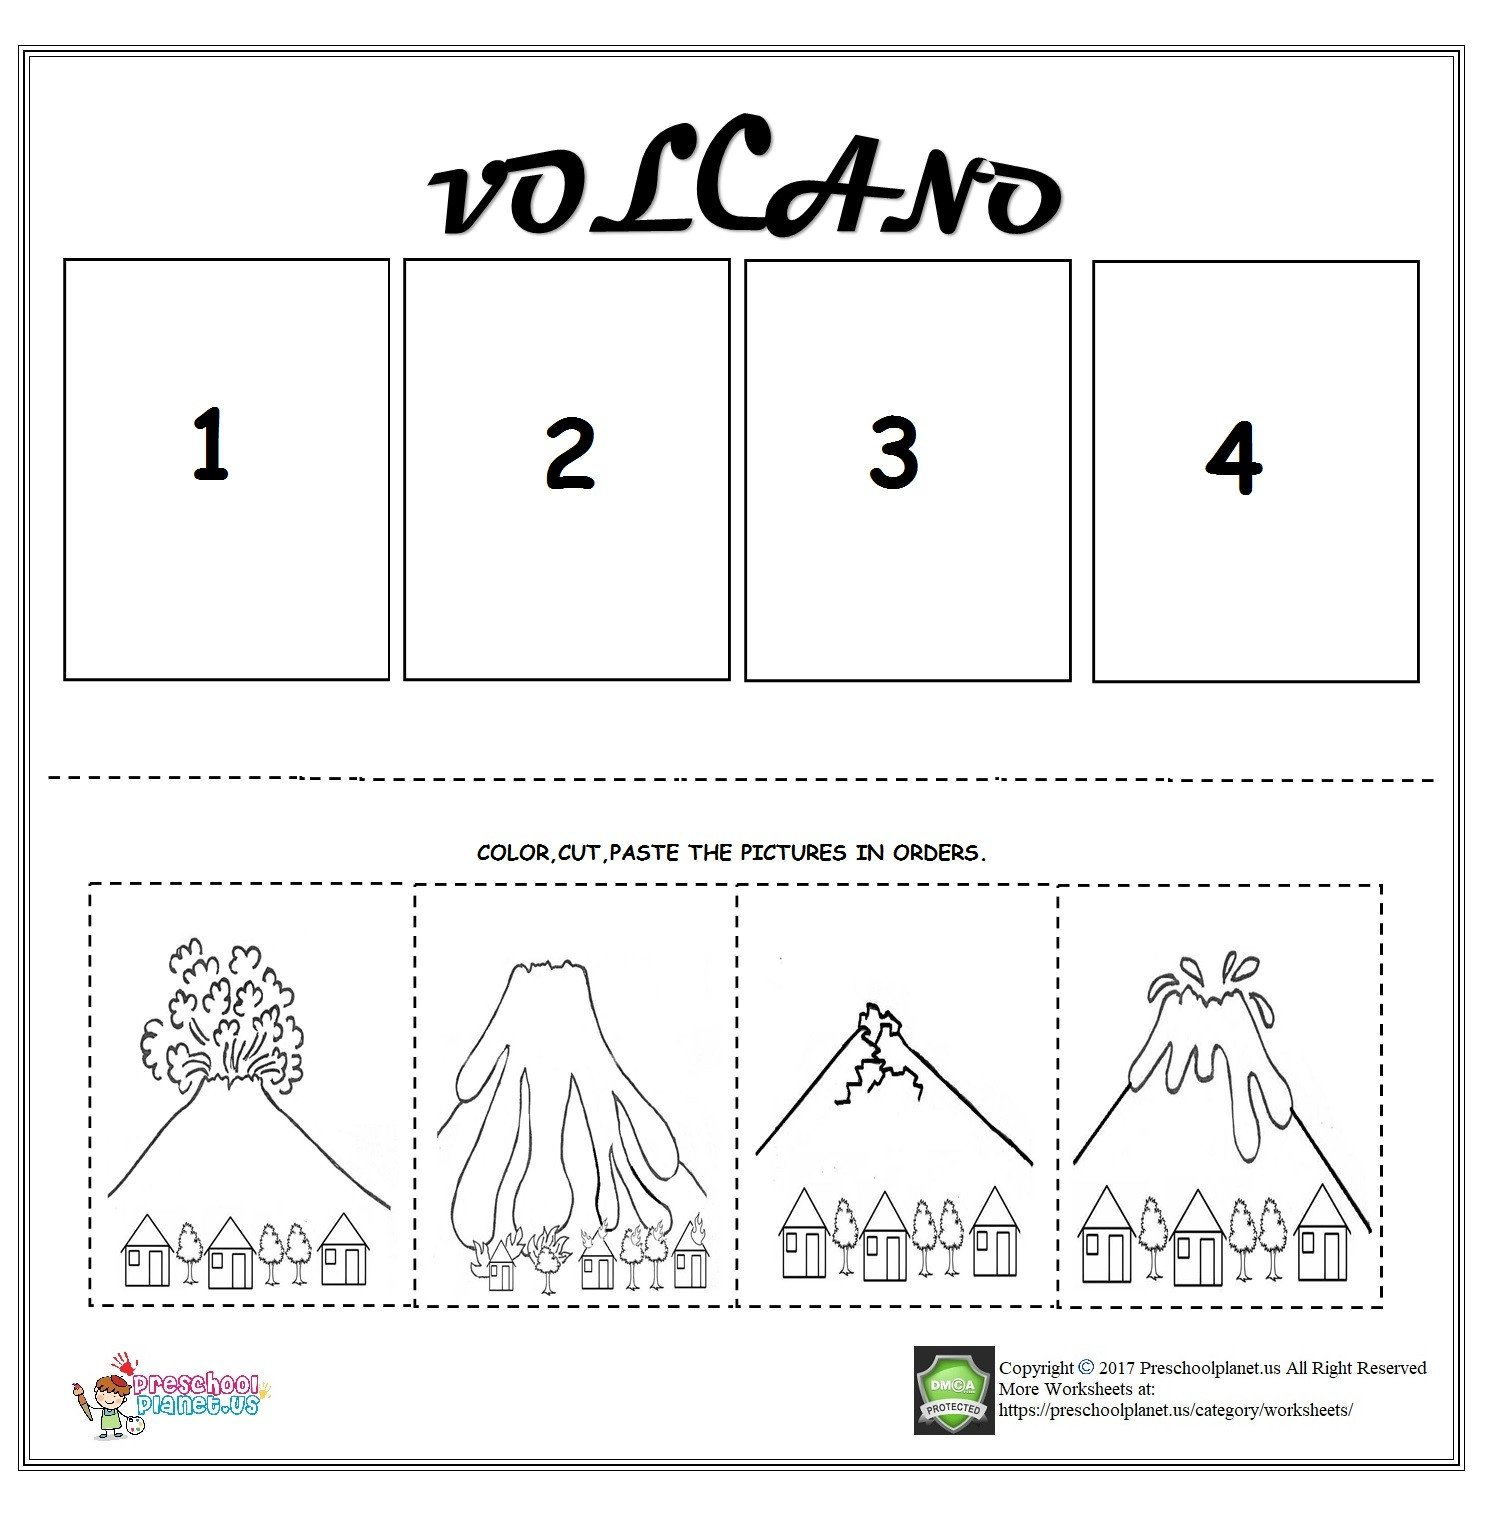 volcano sequencing worksheet for kids